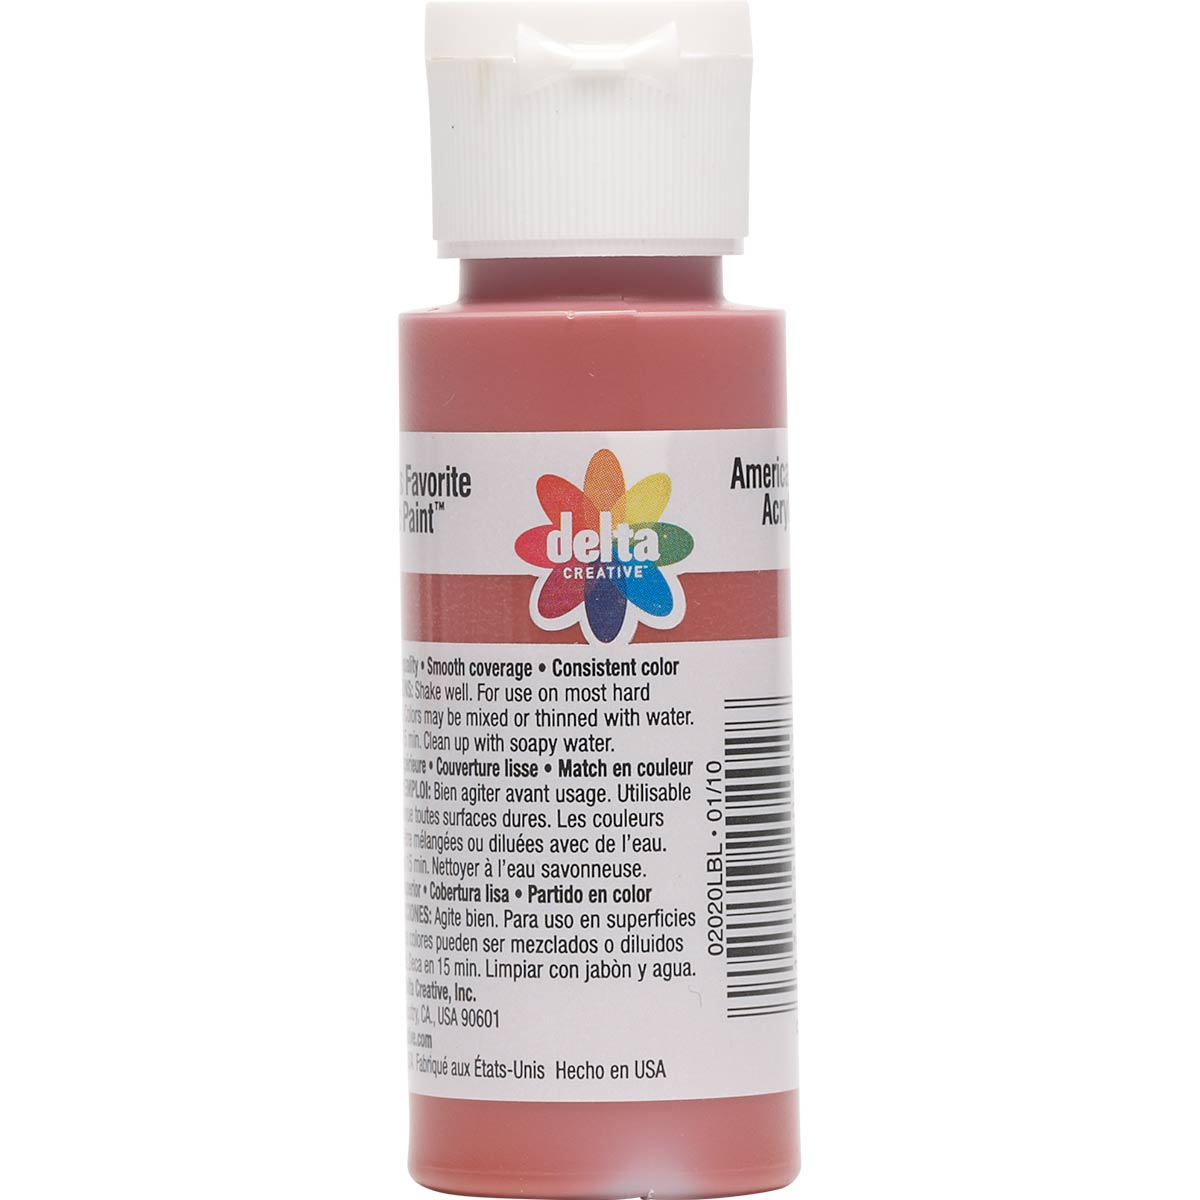 Delta Ceramcoat ® Acrylic Paint - Red Iron Oxide, 2 oz. - 020200202W